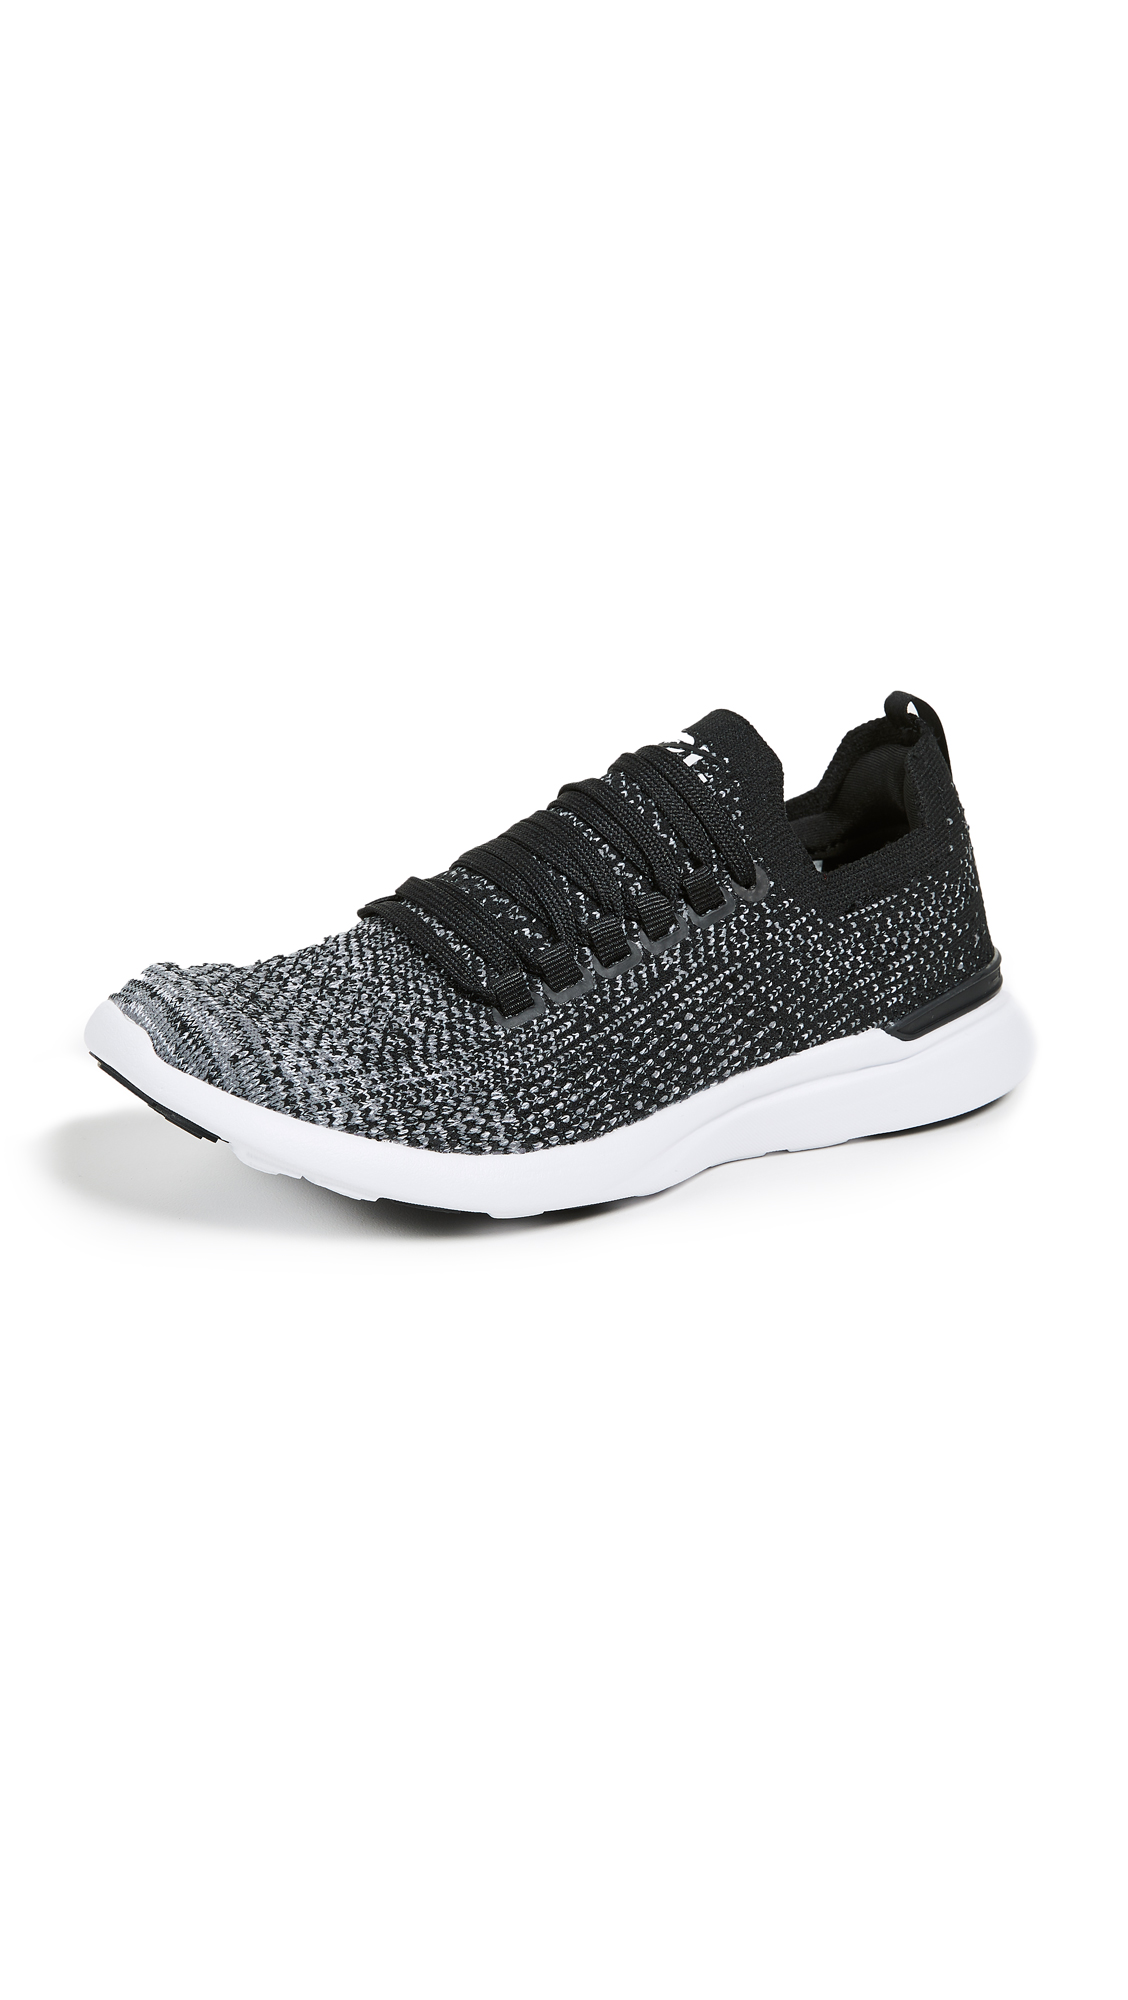 APL: Athletic Propulsion Labs TechLoom Breeze Sneakers - Black/Heather Grey/White